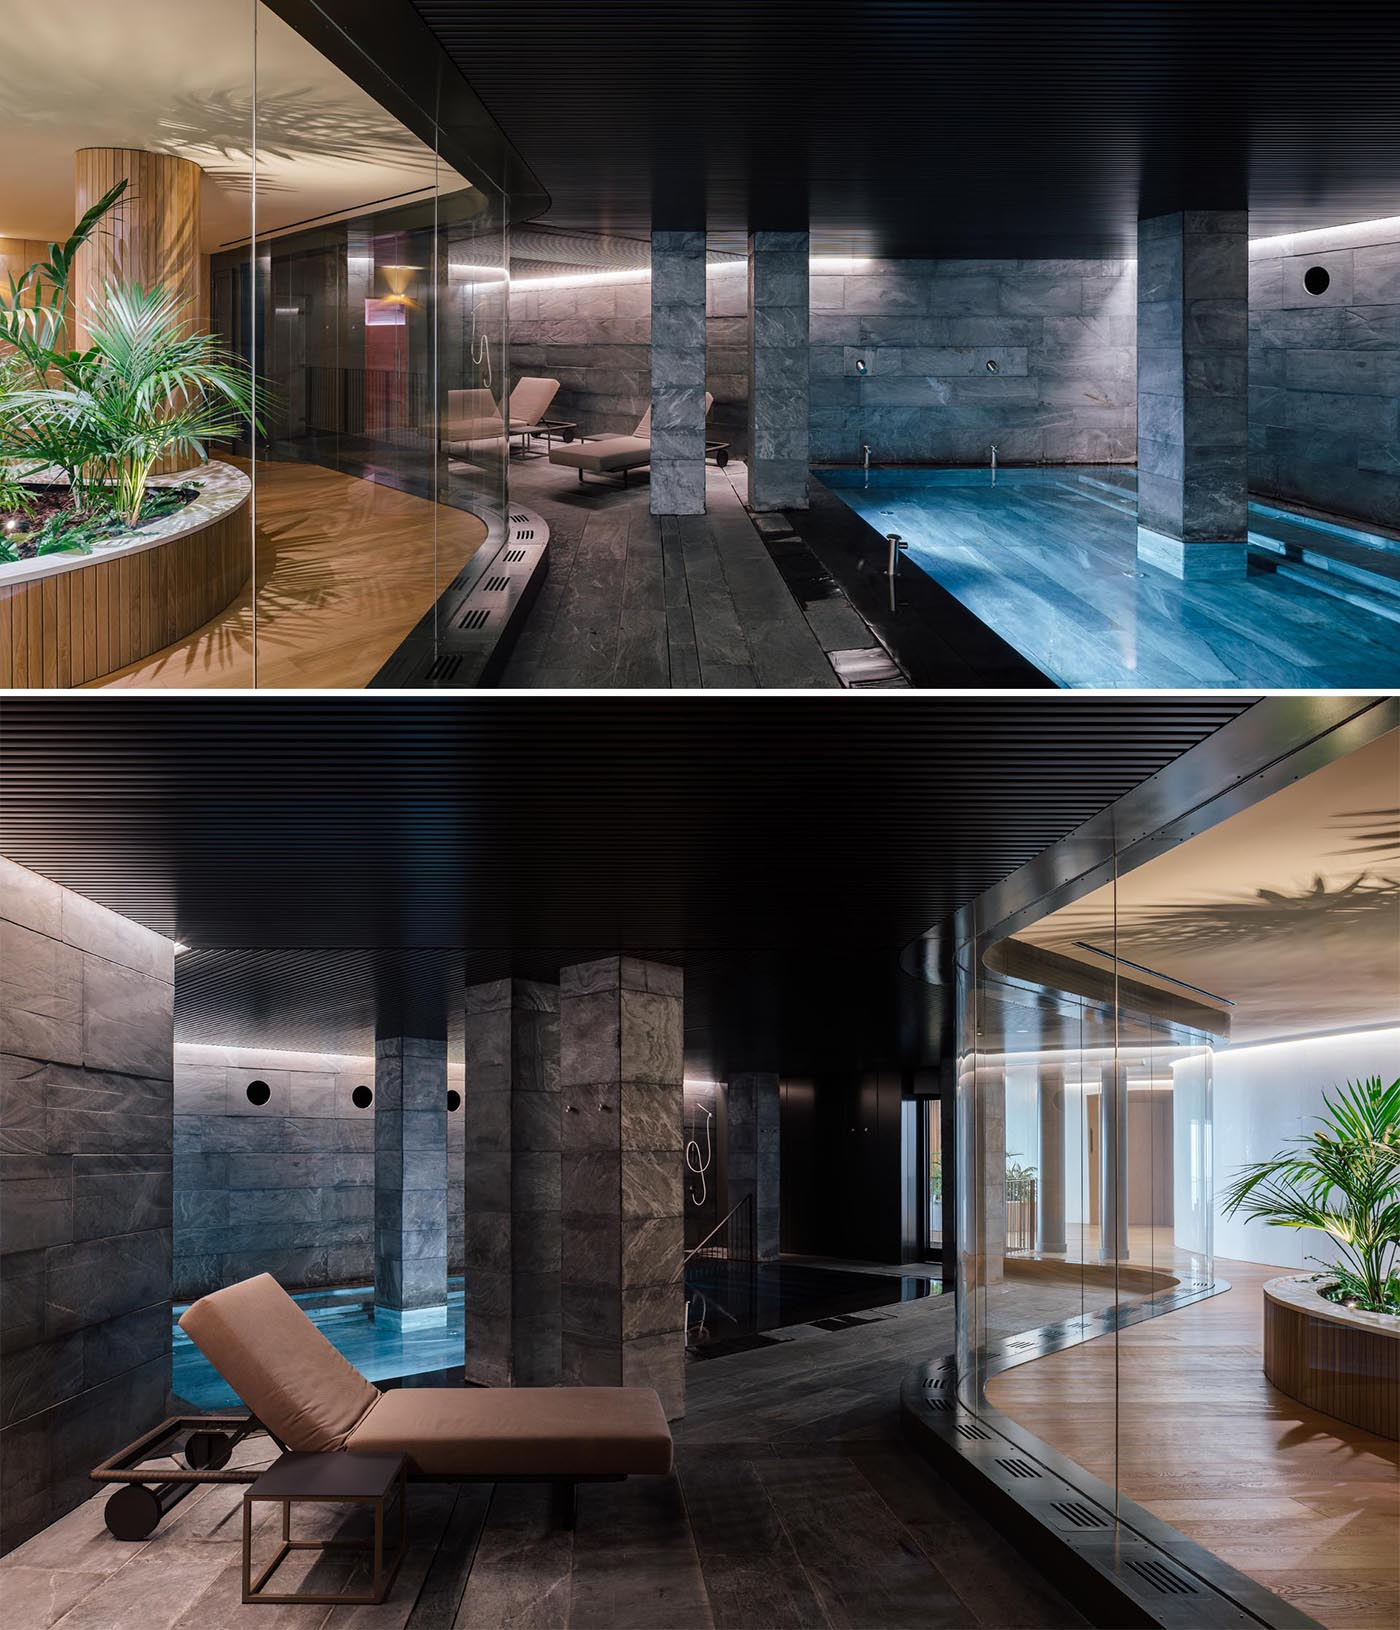 A hotel spa with a curved glass wall that provides views of the swimming pool.